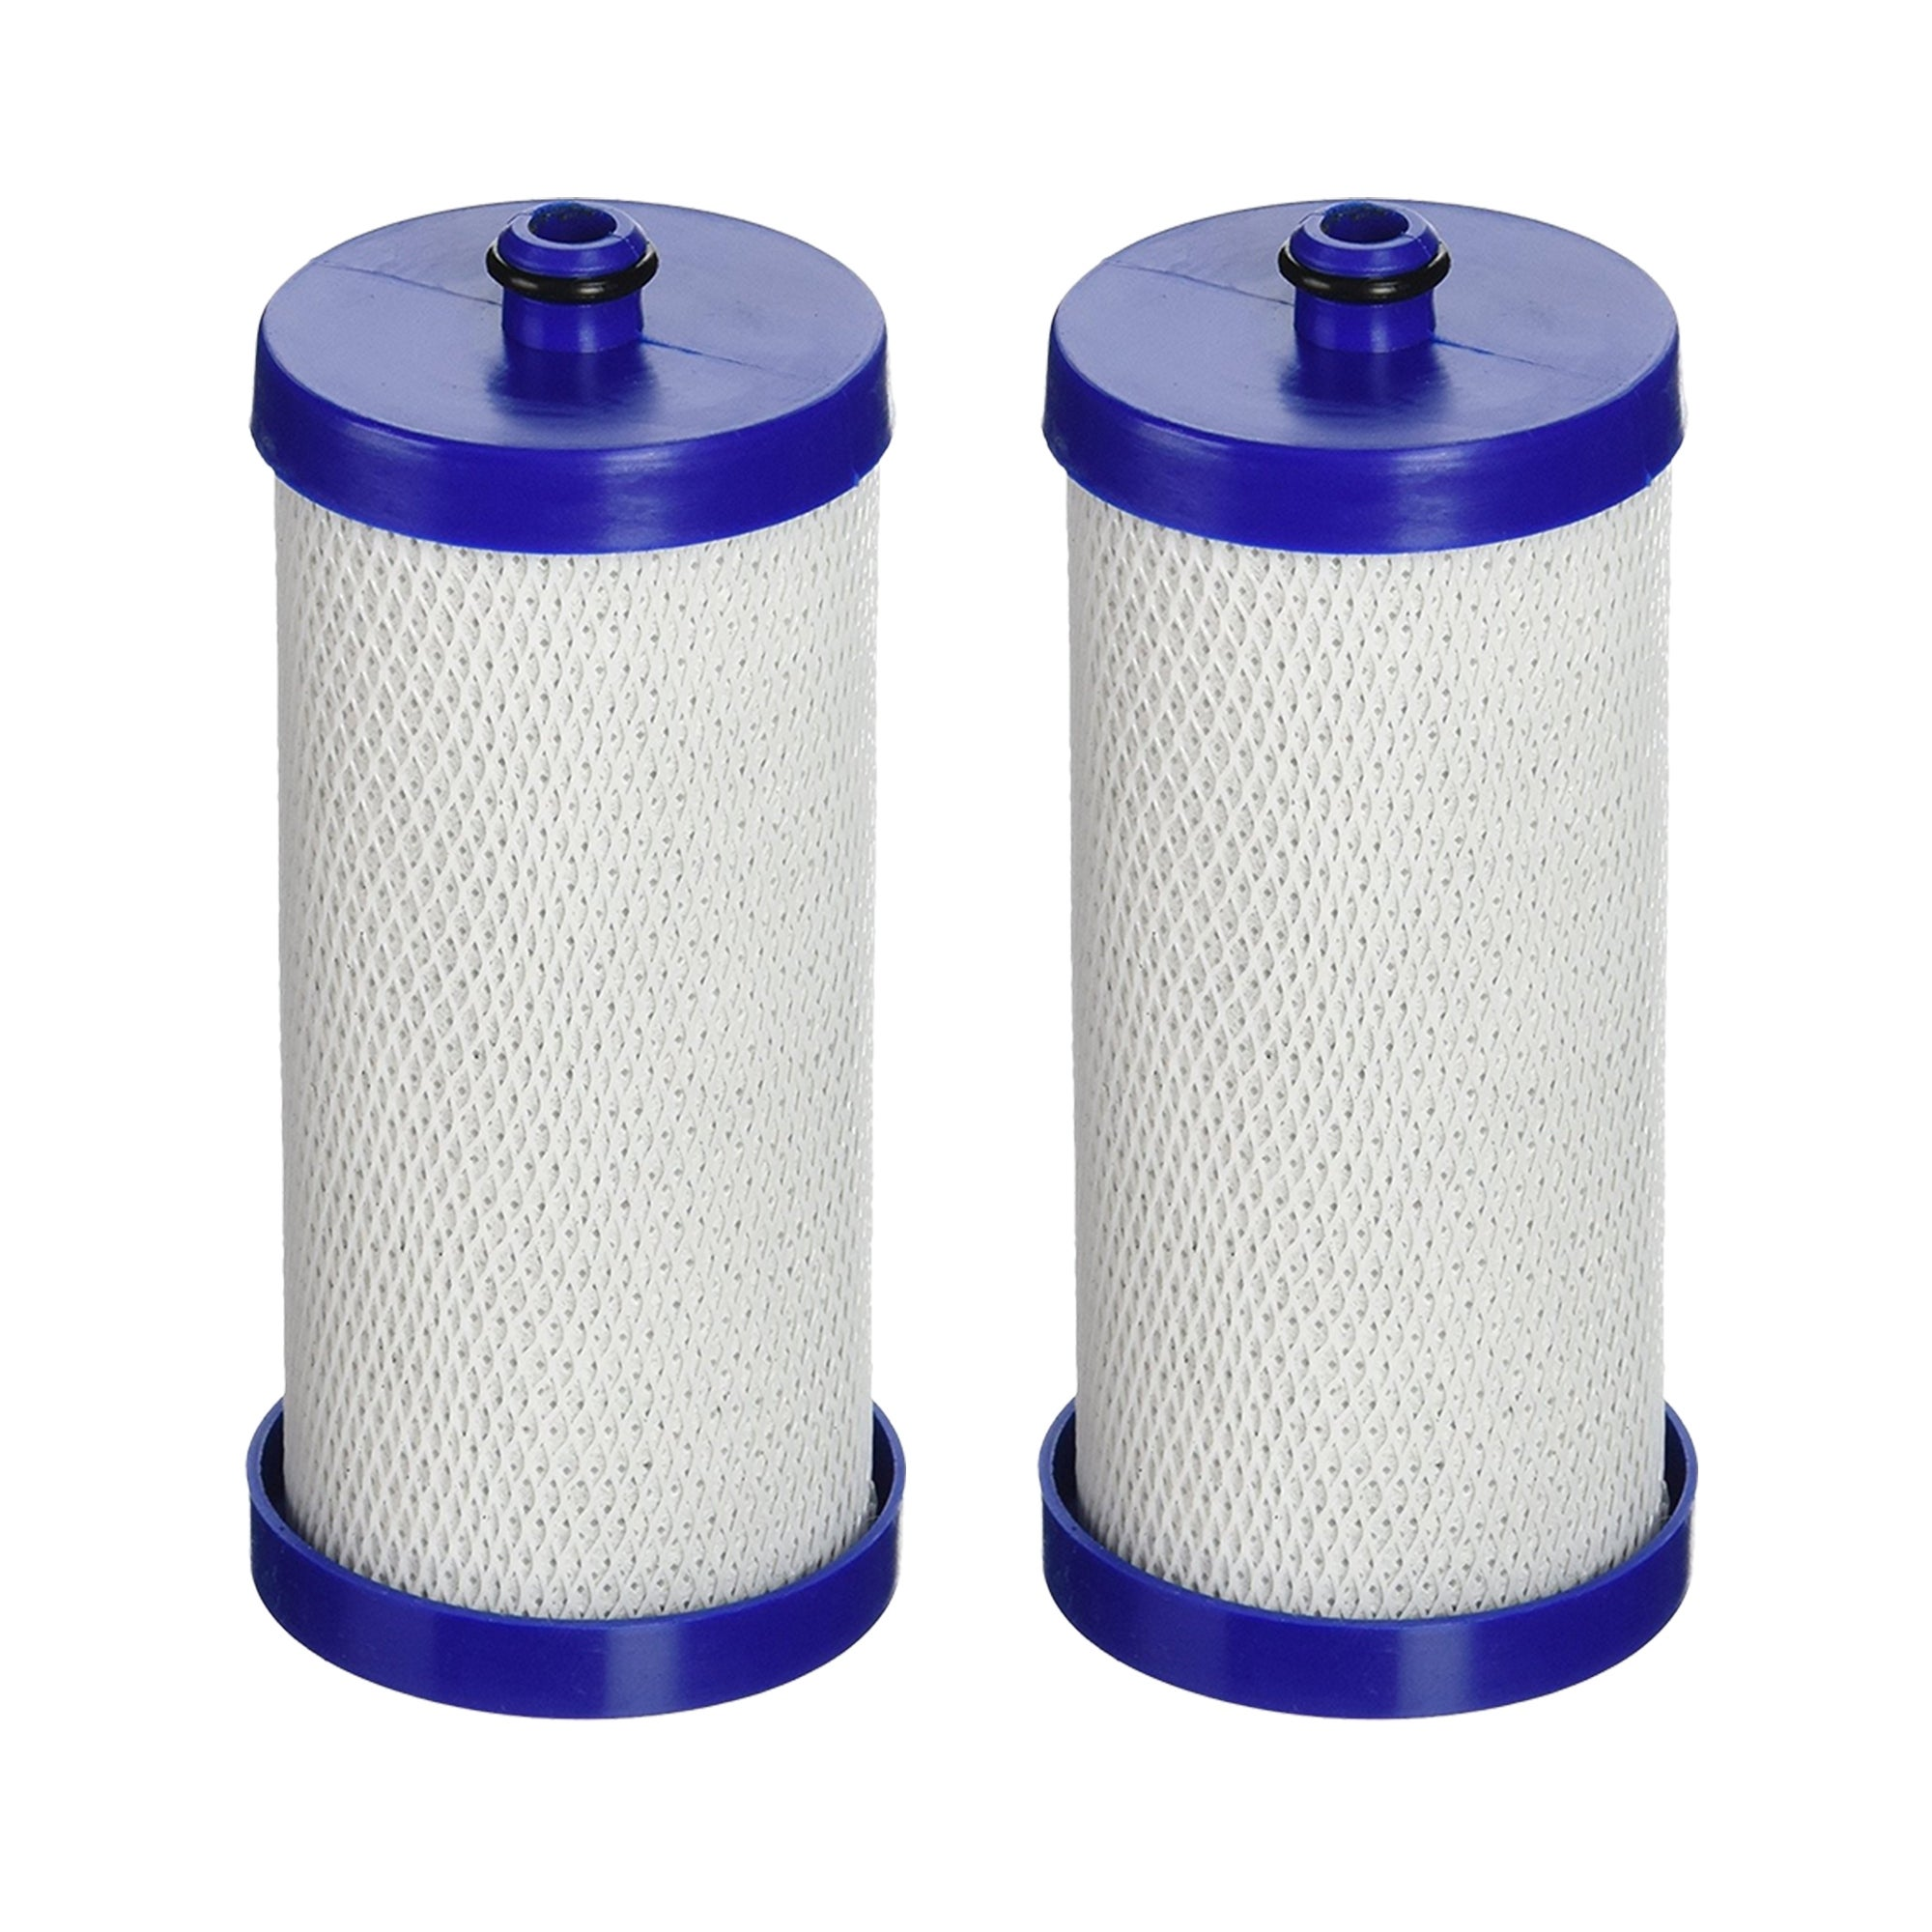 Replacement Water Filter for Frigidaire FRS26R2AW5 Refrigerators 3 Pack